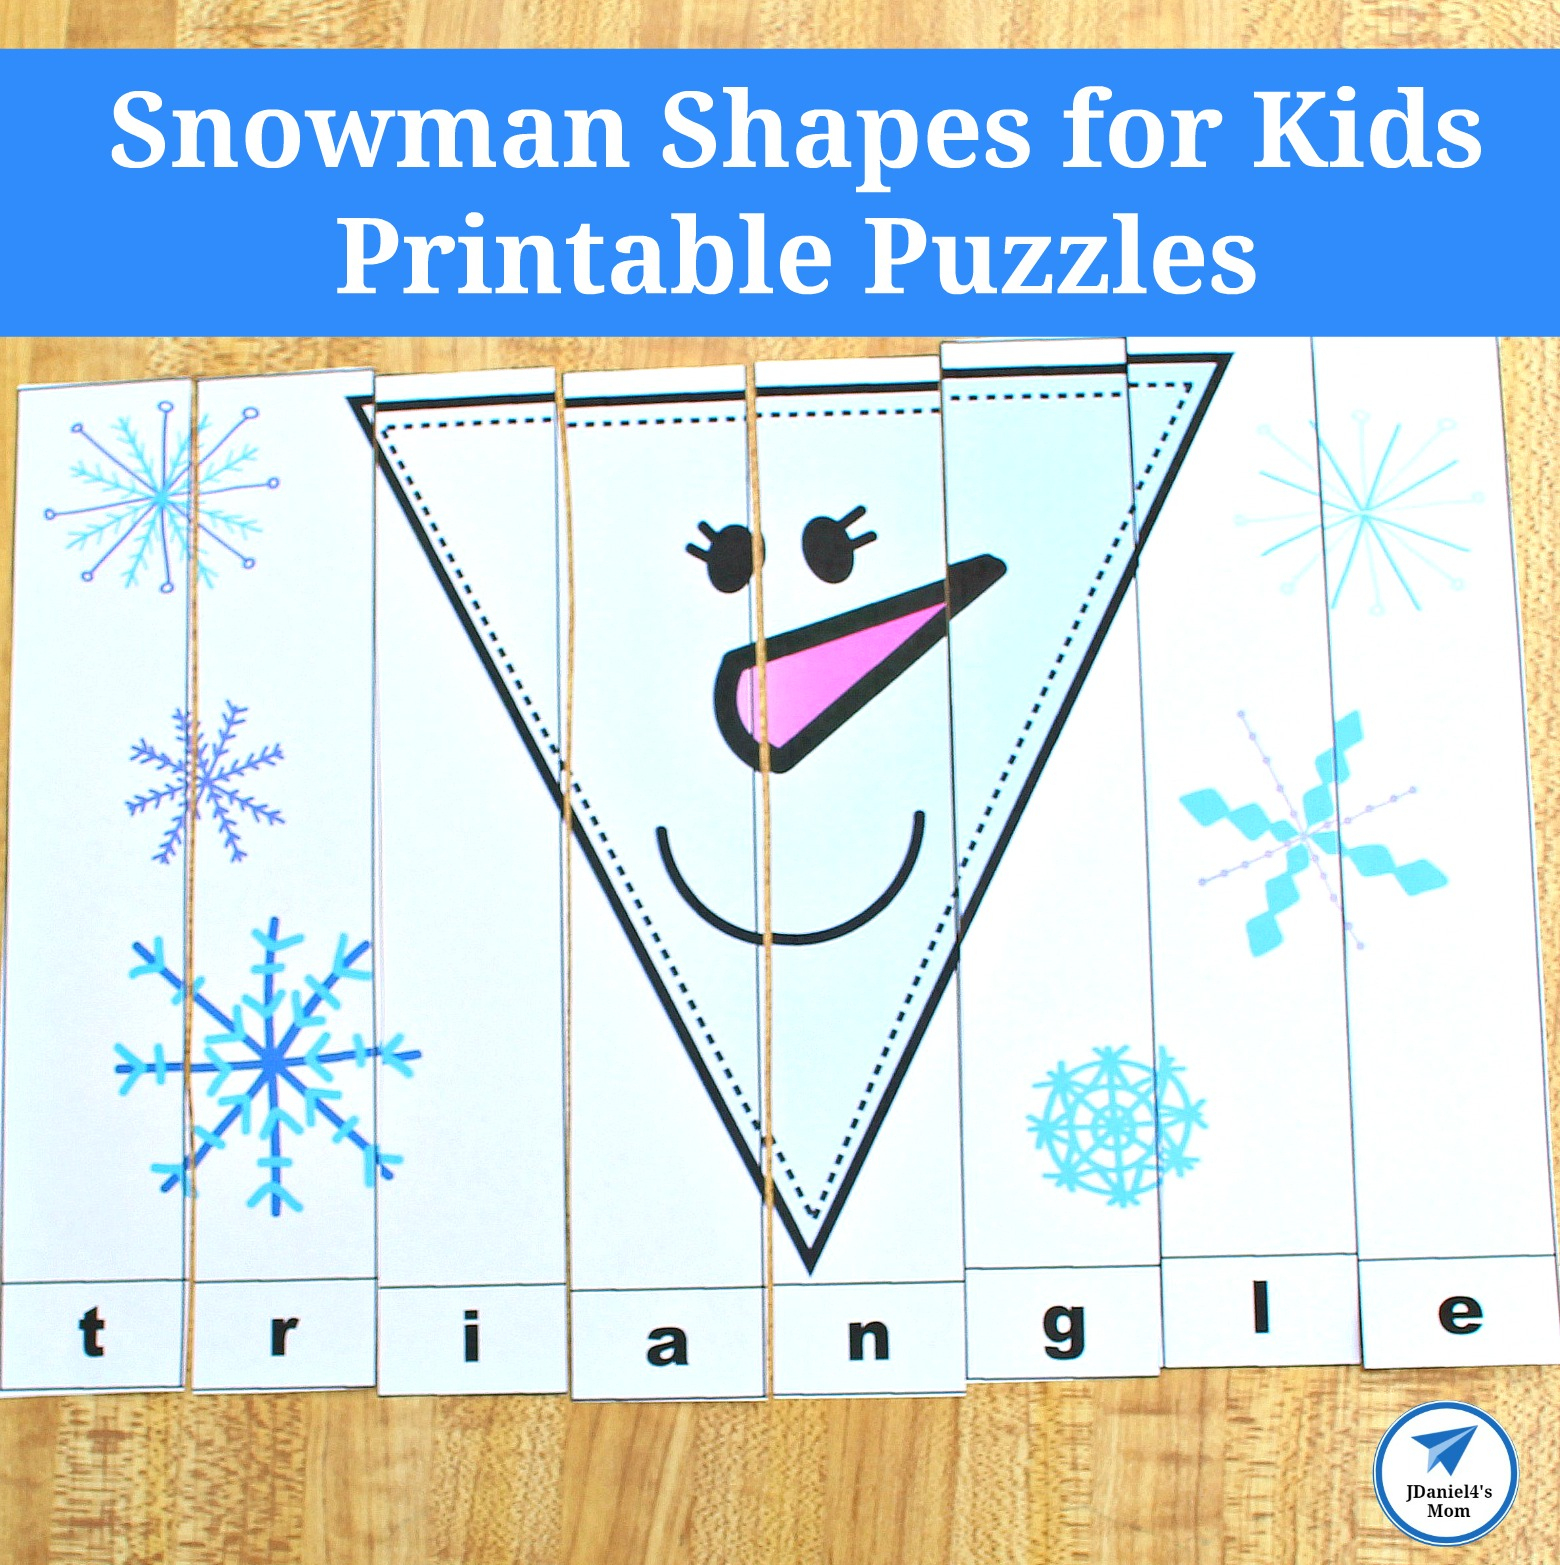 Snowman Shapes For Kids Printable Puzzles - Jdaniel4S Mom - Printable Snowman Puzzle